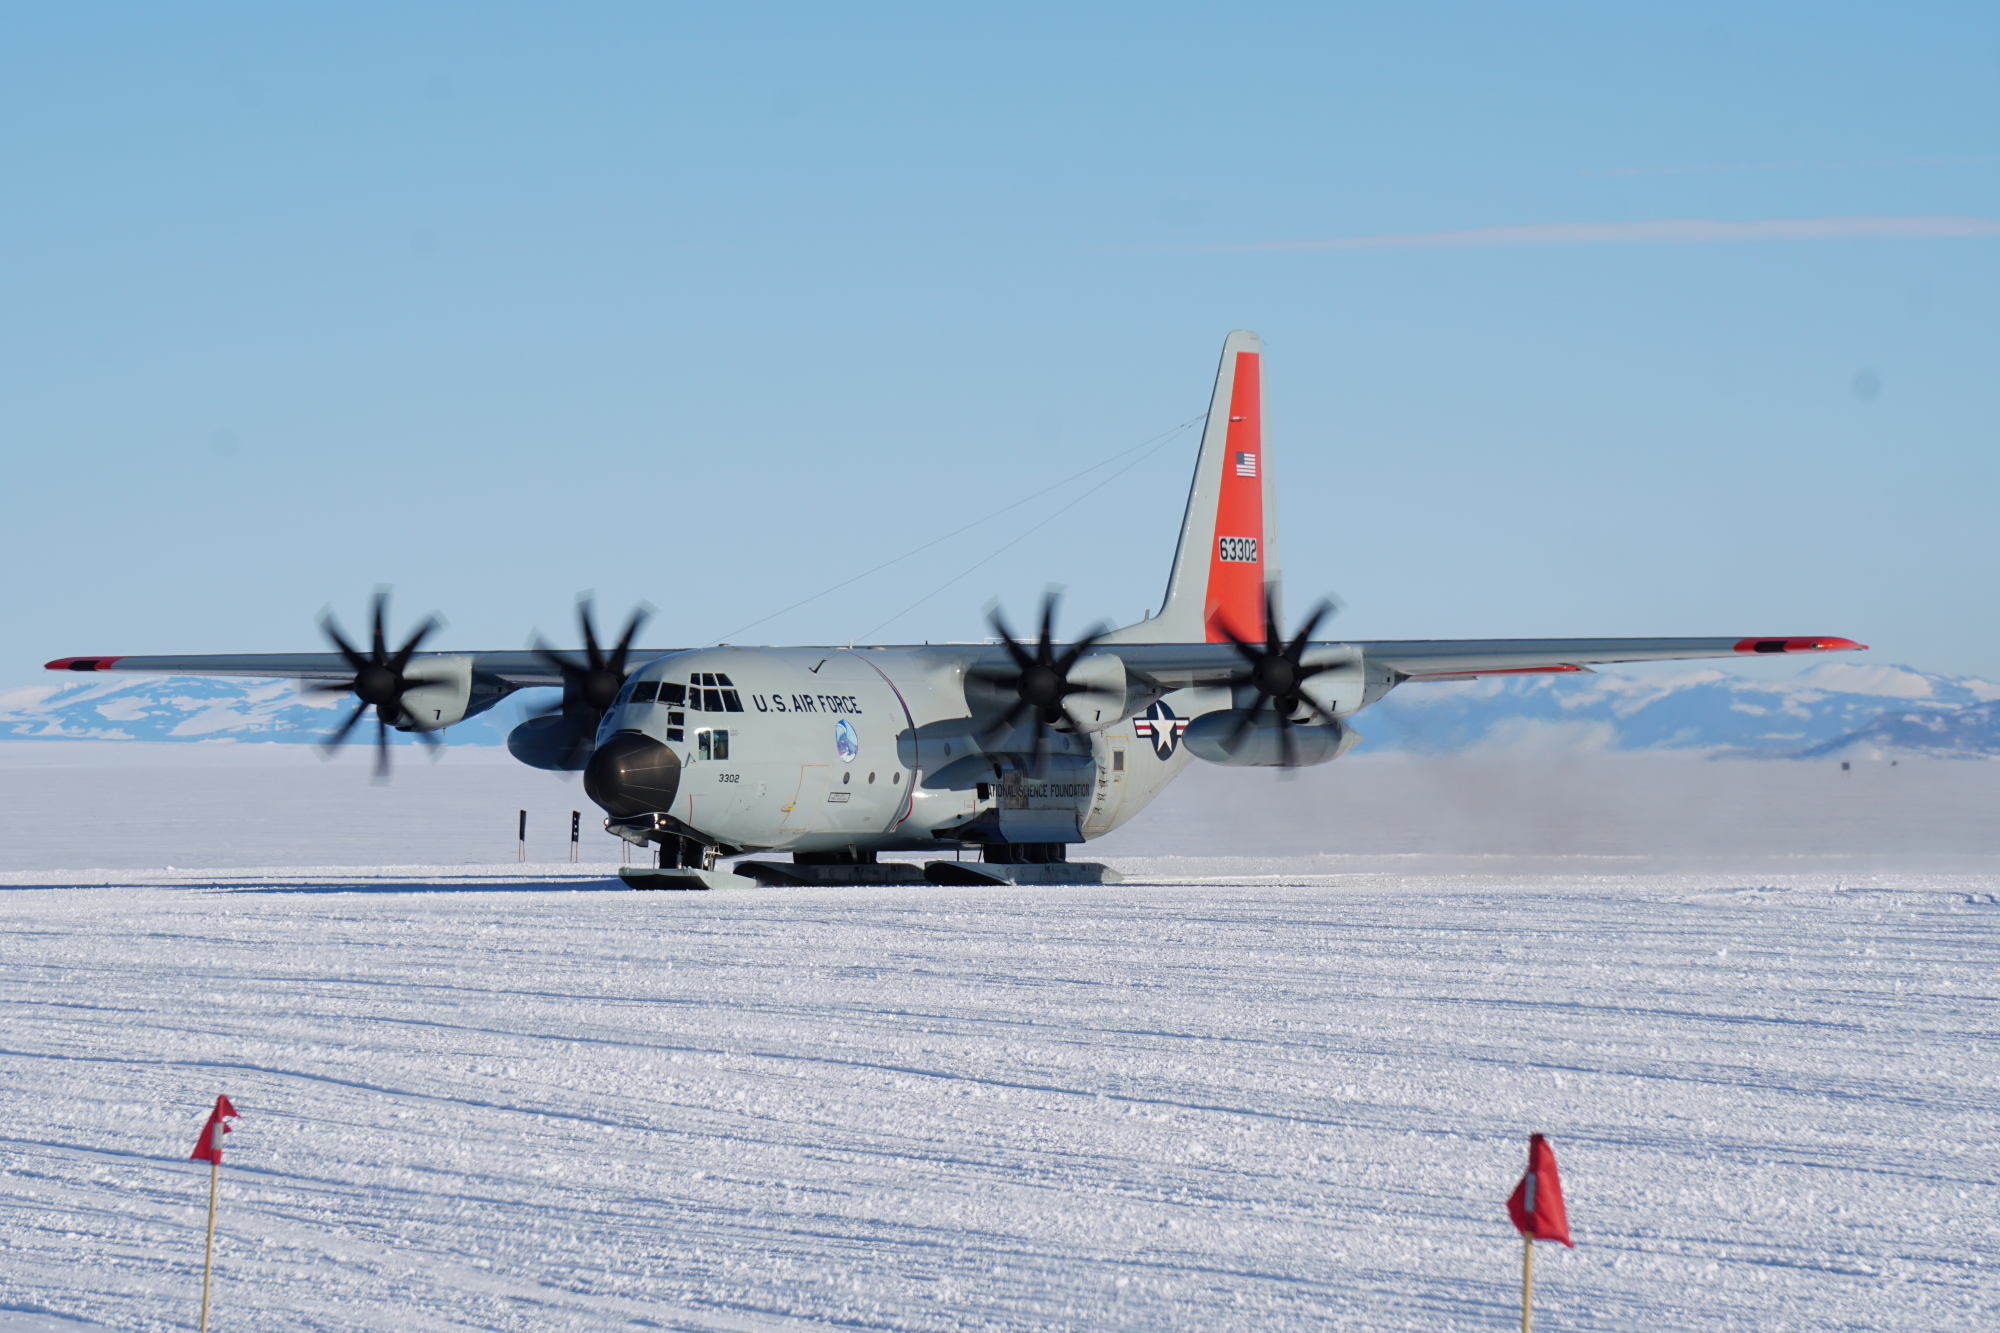 A LC-130 from the 109th Airlift Wing, New York Air National Guard, makes it's first landing at Williams Field Antarctica, kicking off the 2019-2020 season in November 2019 at McMurdo Station. (Garrison Hornick/Air National Guard)